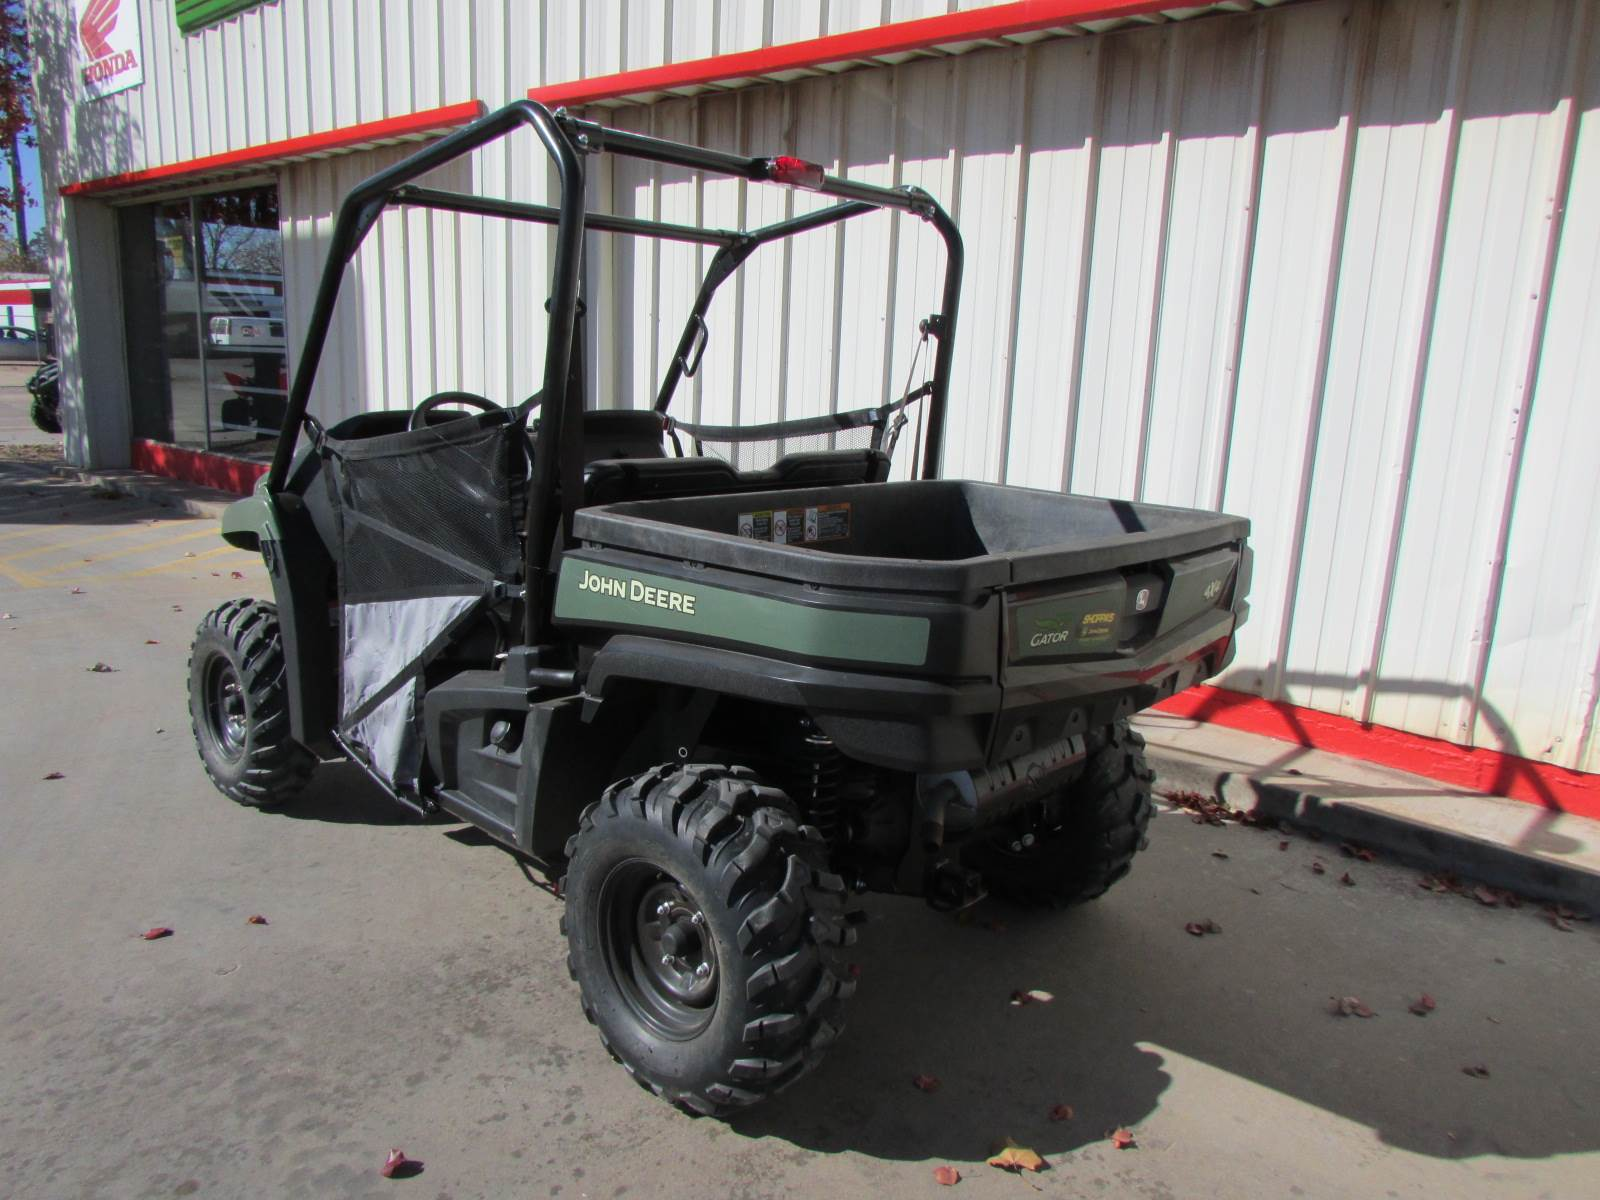 2017 John Deere Gator XUV590i in Wichita Falls, Texas - Photo 6